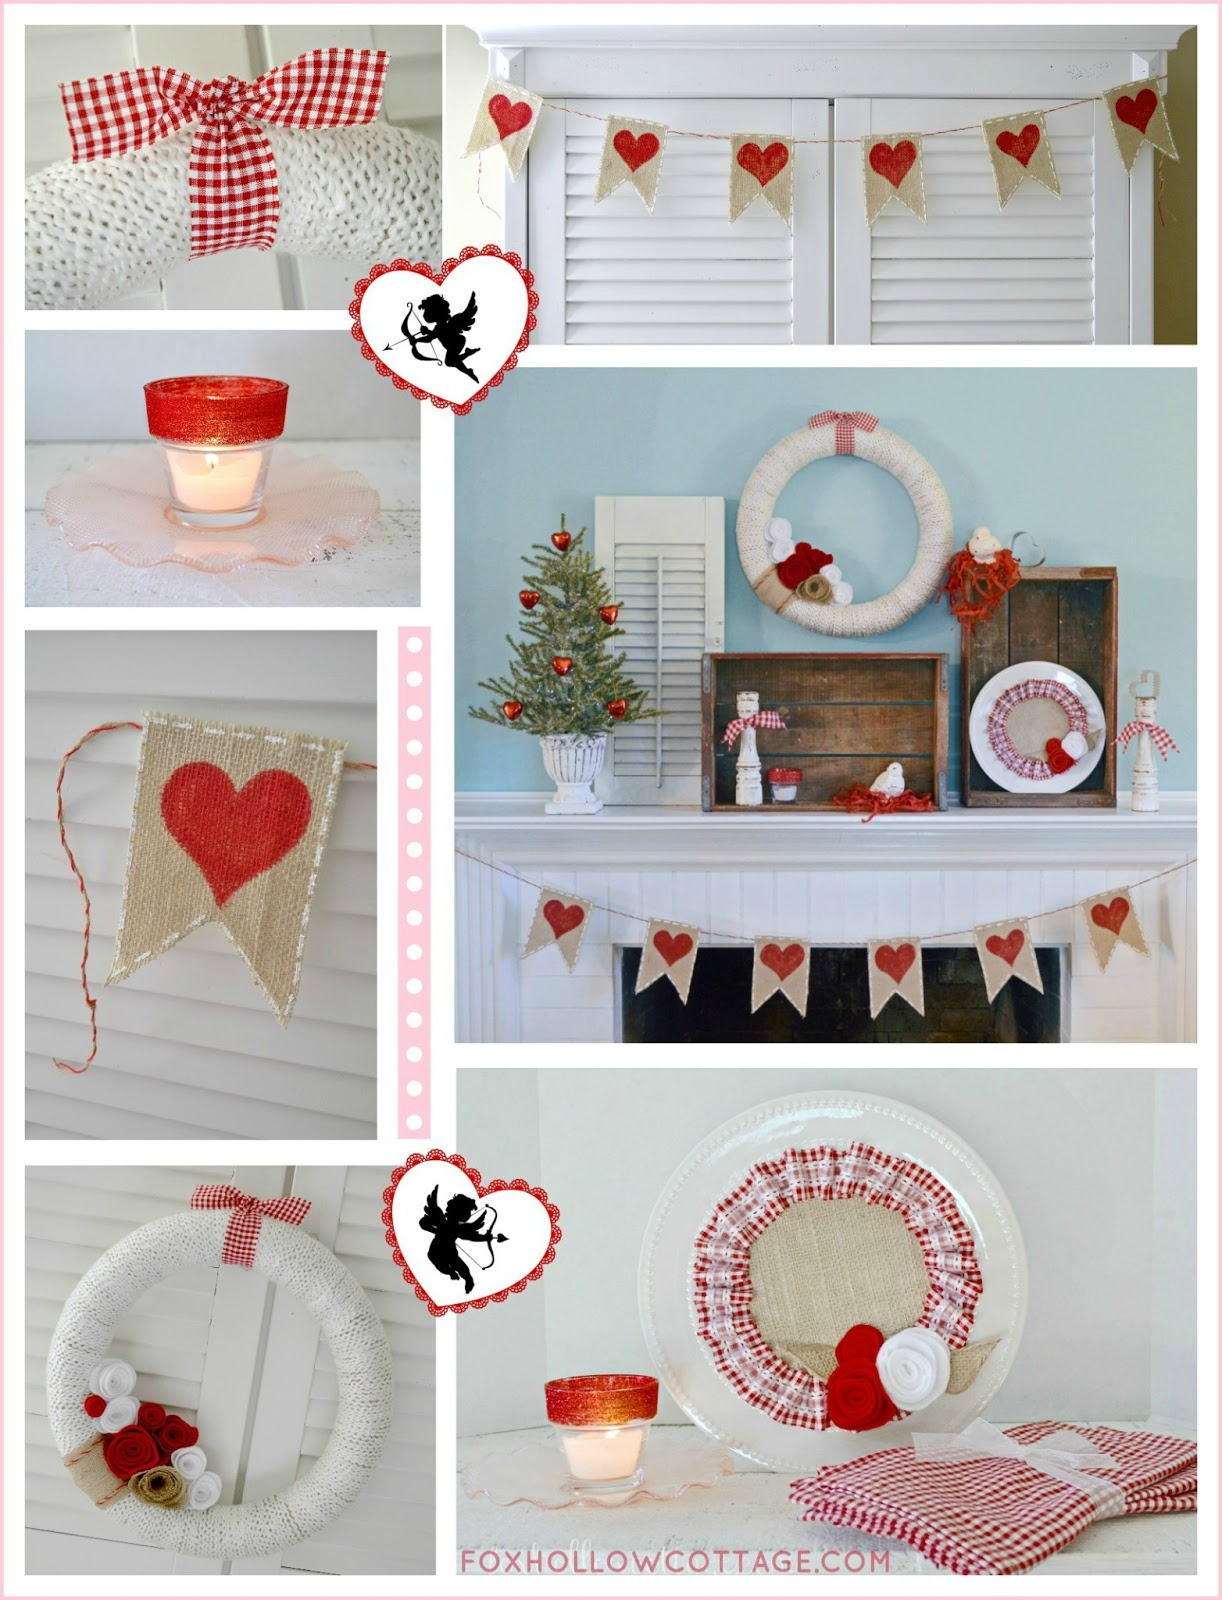 Valentine 39 s at fox hollow cheapity cheap diy style fox for Cheap diy home decor